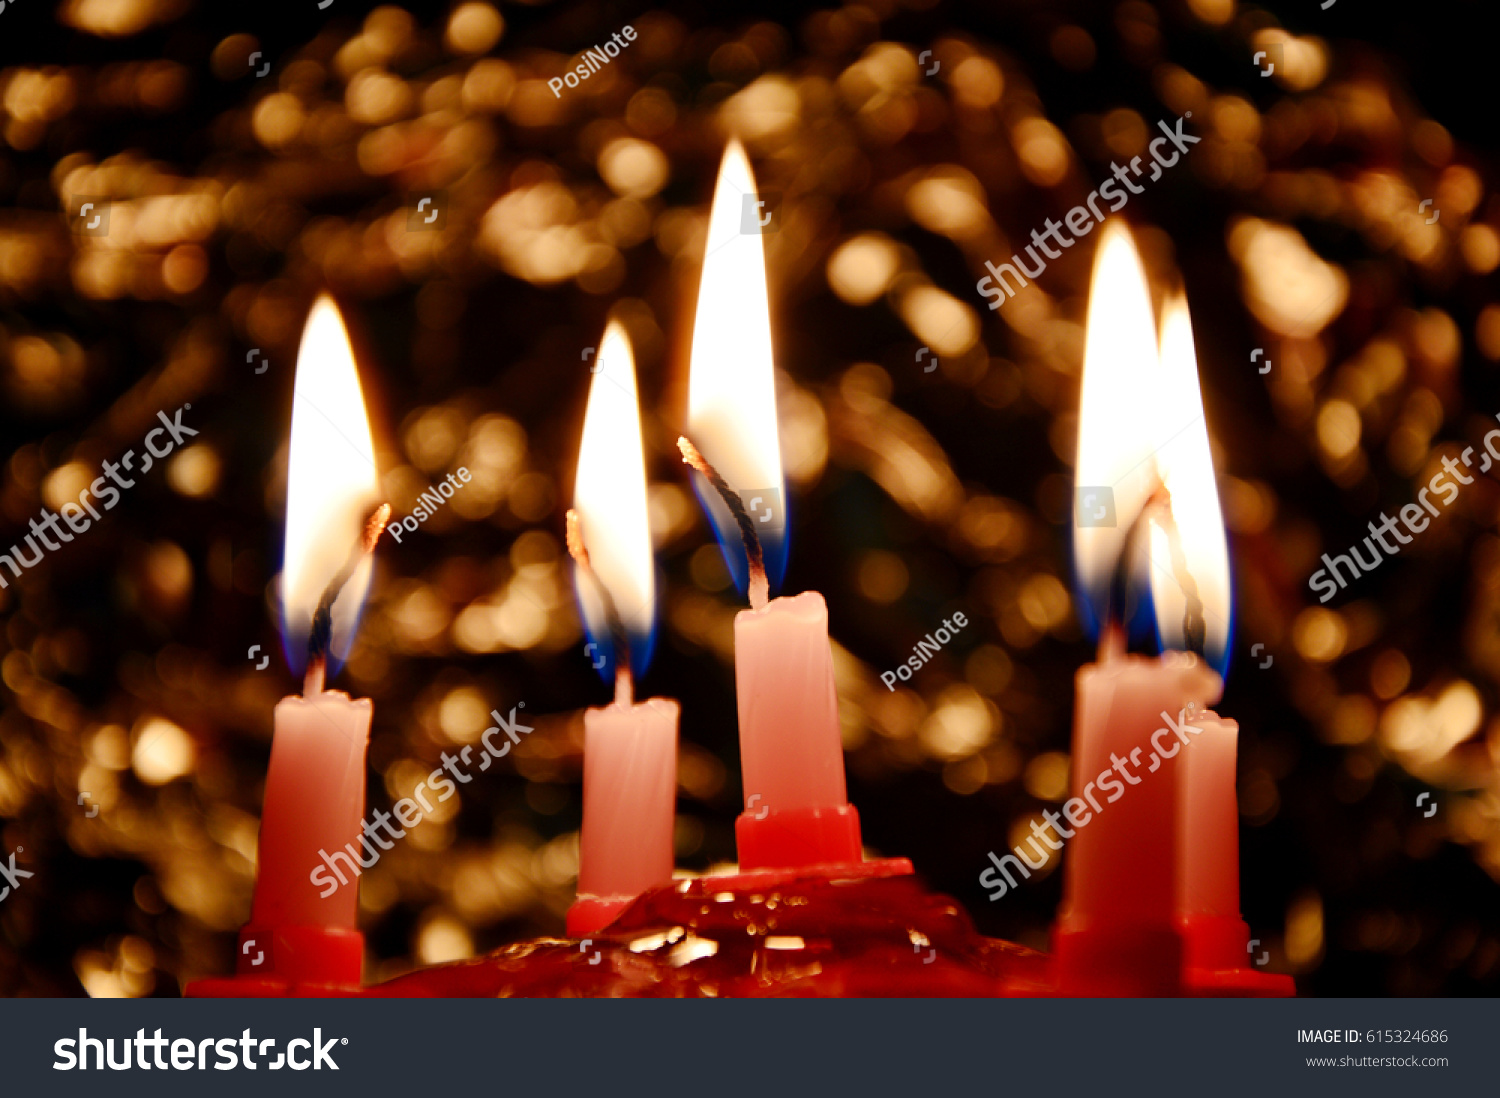 Dark room with candle light - Birthday Cake With Candles Light And Bohke In The Dark Room